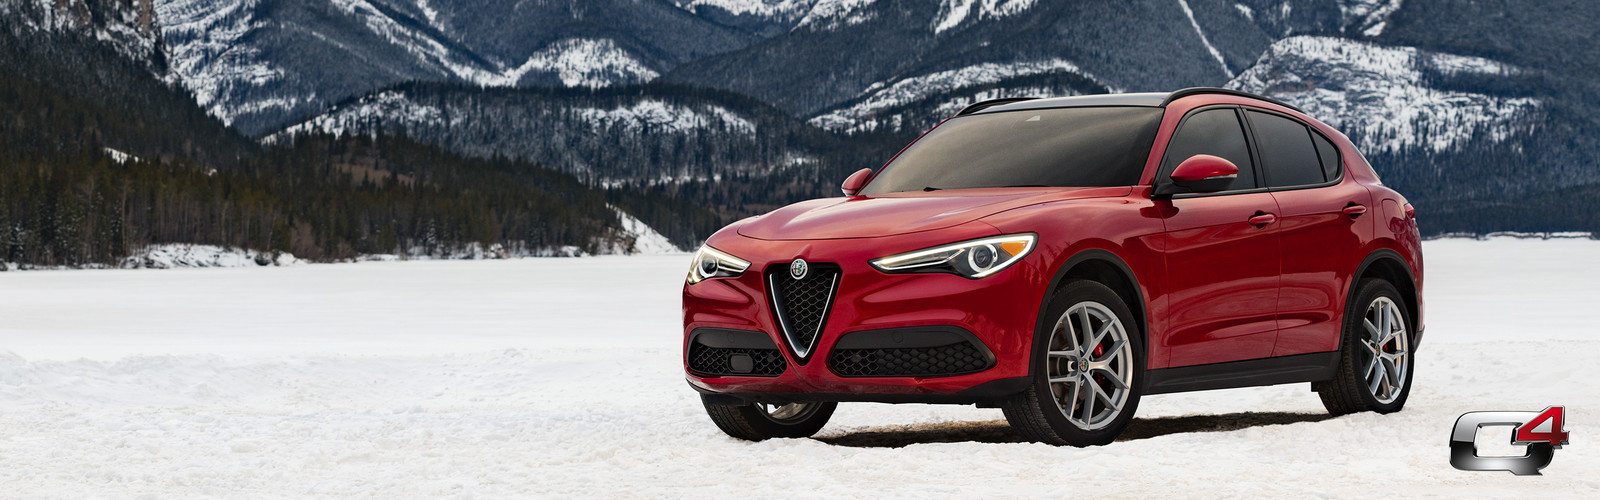 Front view of the red 2019 Alfa Romeo Stelvio parked in the mountains